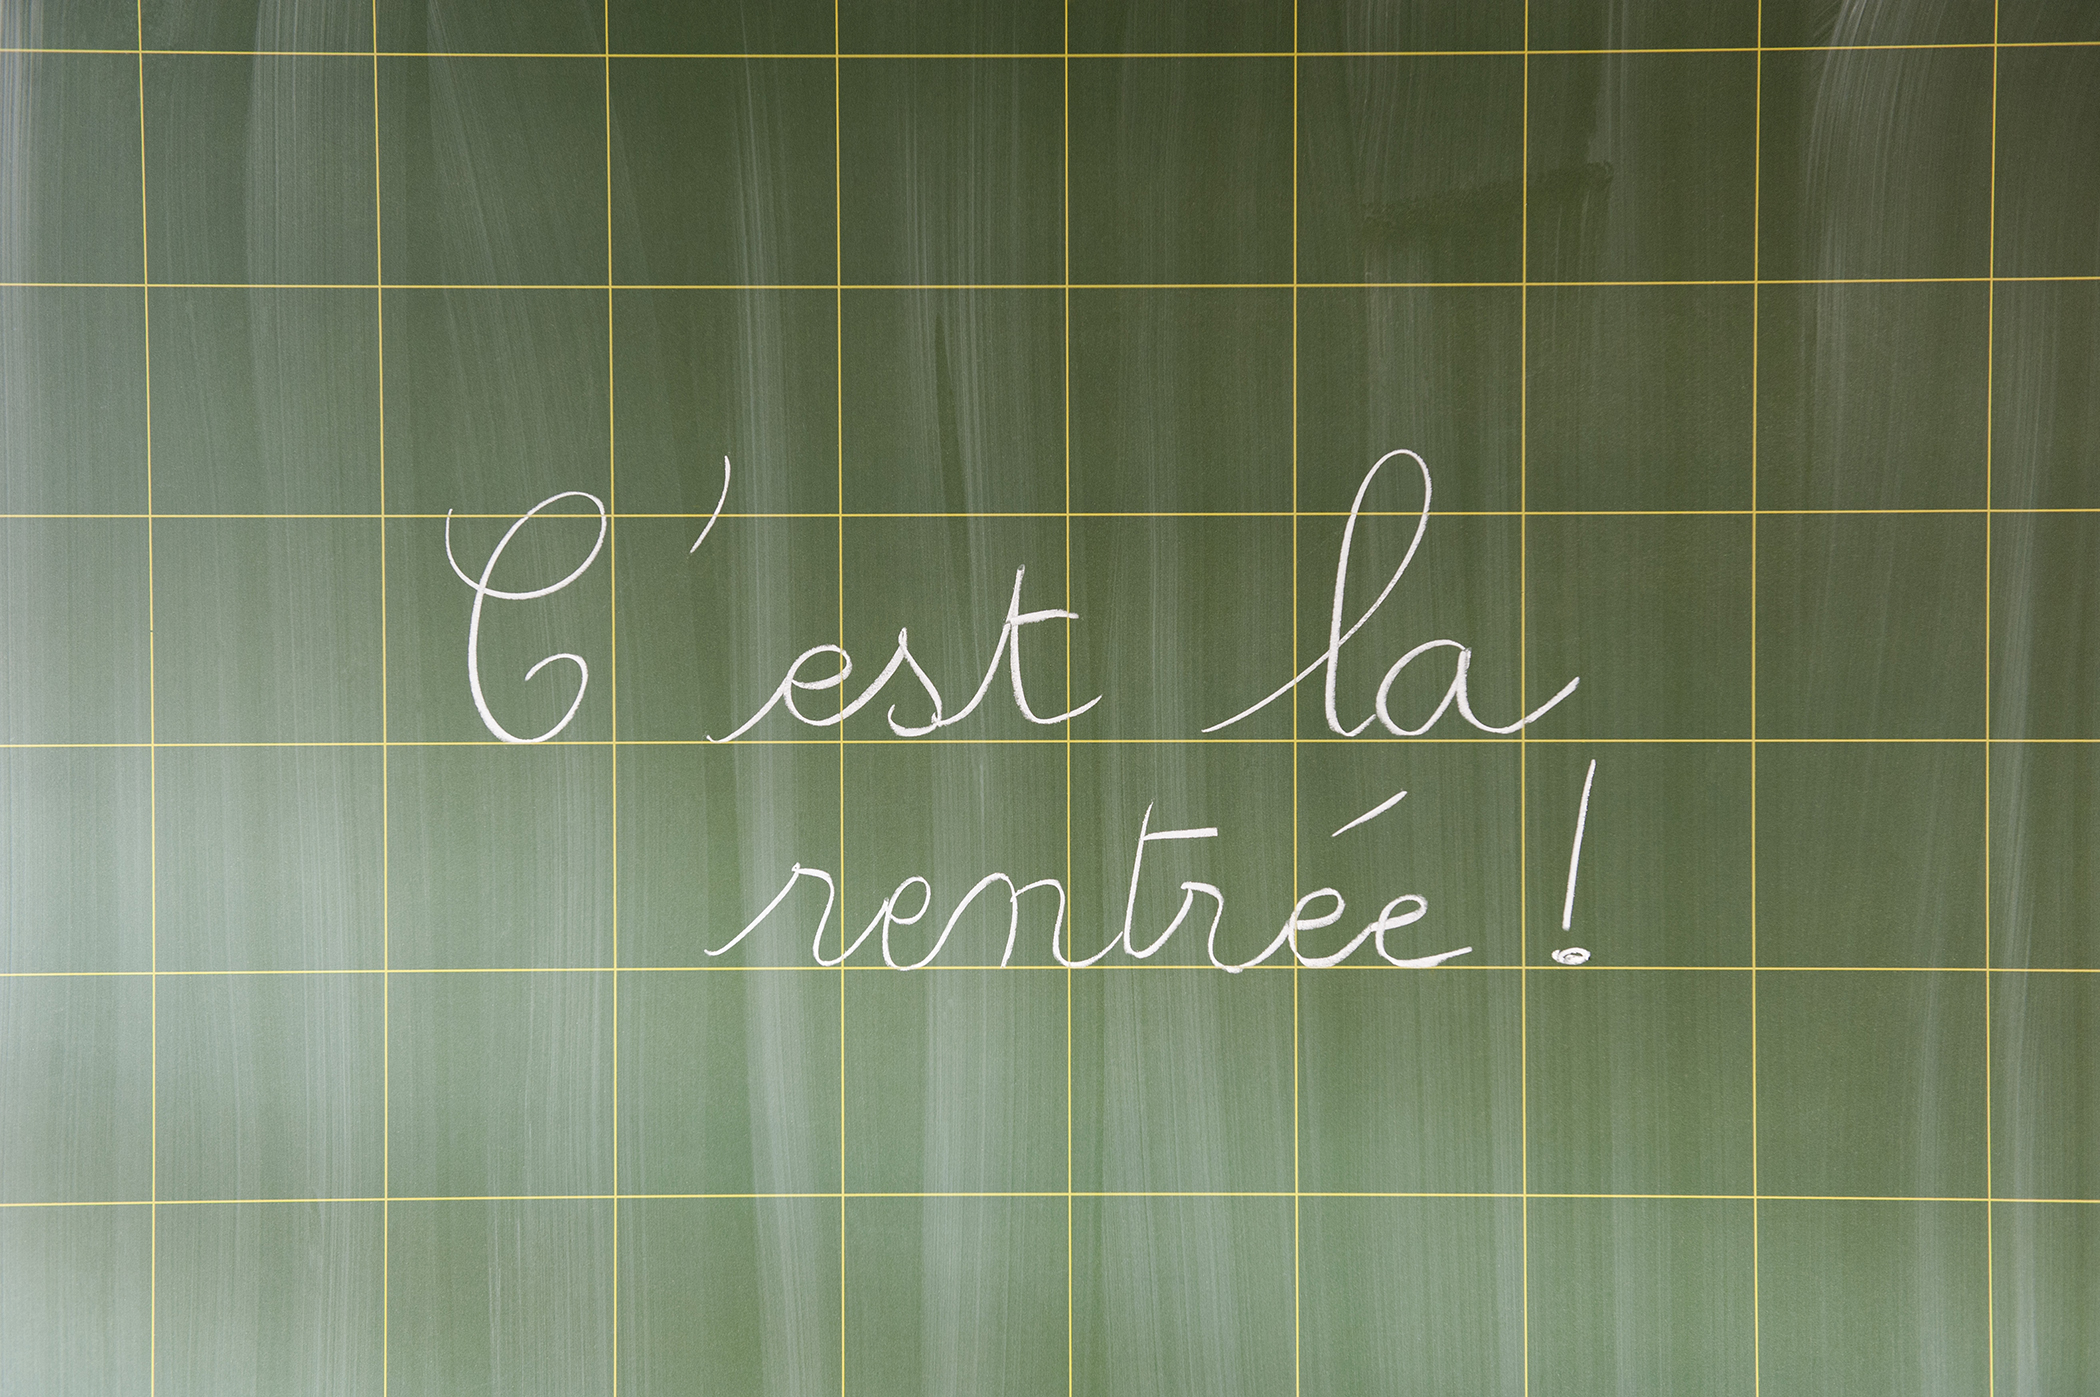 Back to School in French on chalkboard